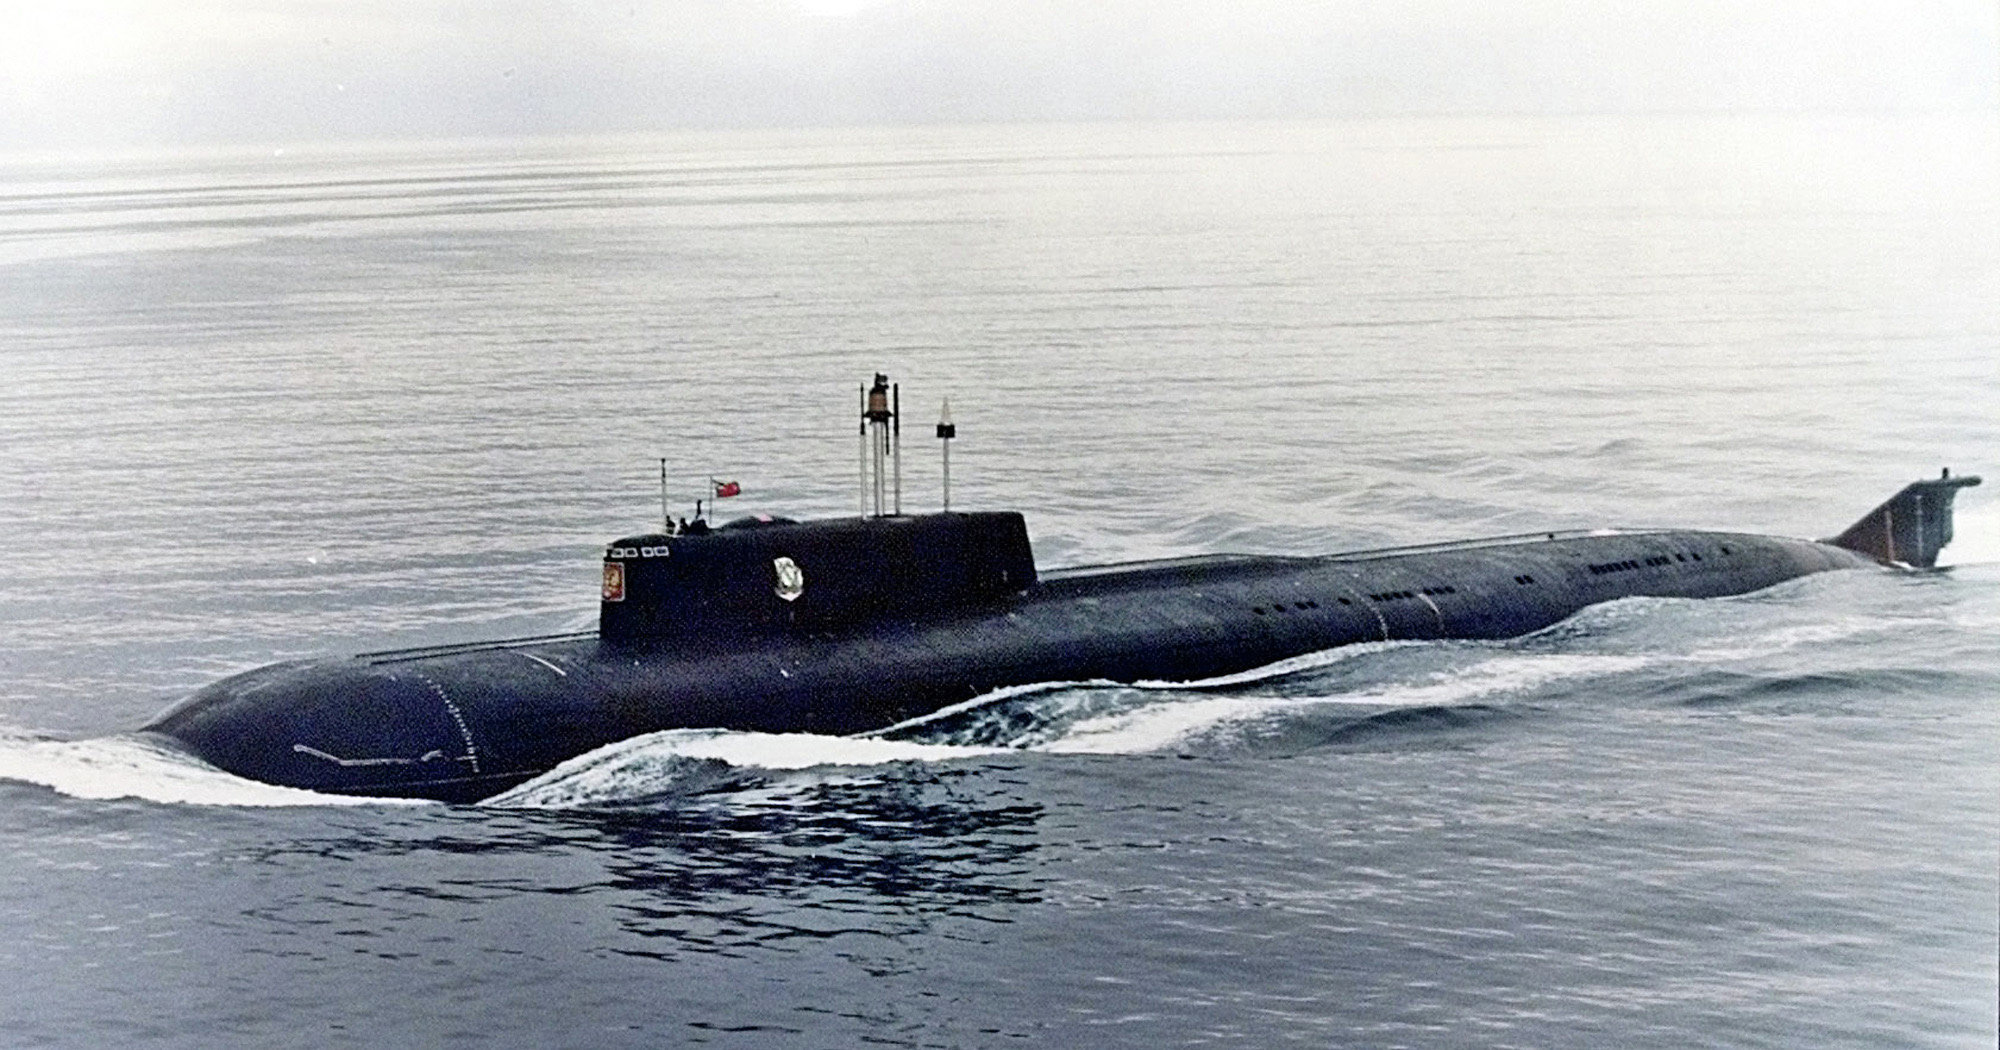 The Kursk, one of Russia's largest and most advanced submarines, which exploded and sank during naval maneuvers in August 2000, heaves ahead in the Barents Sea near Severomorsk in this 1999 file photo